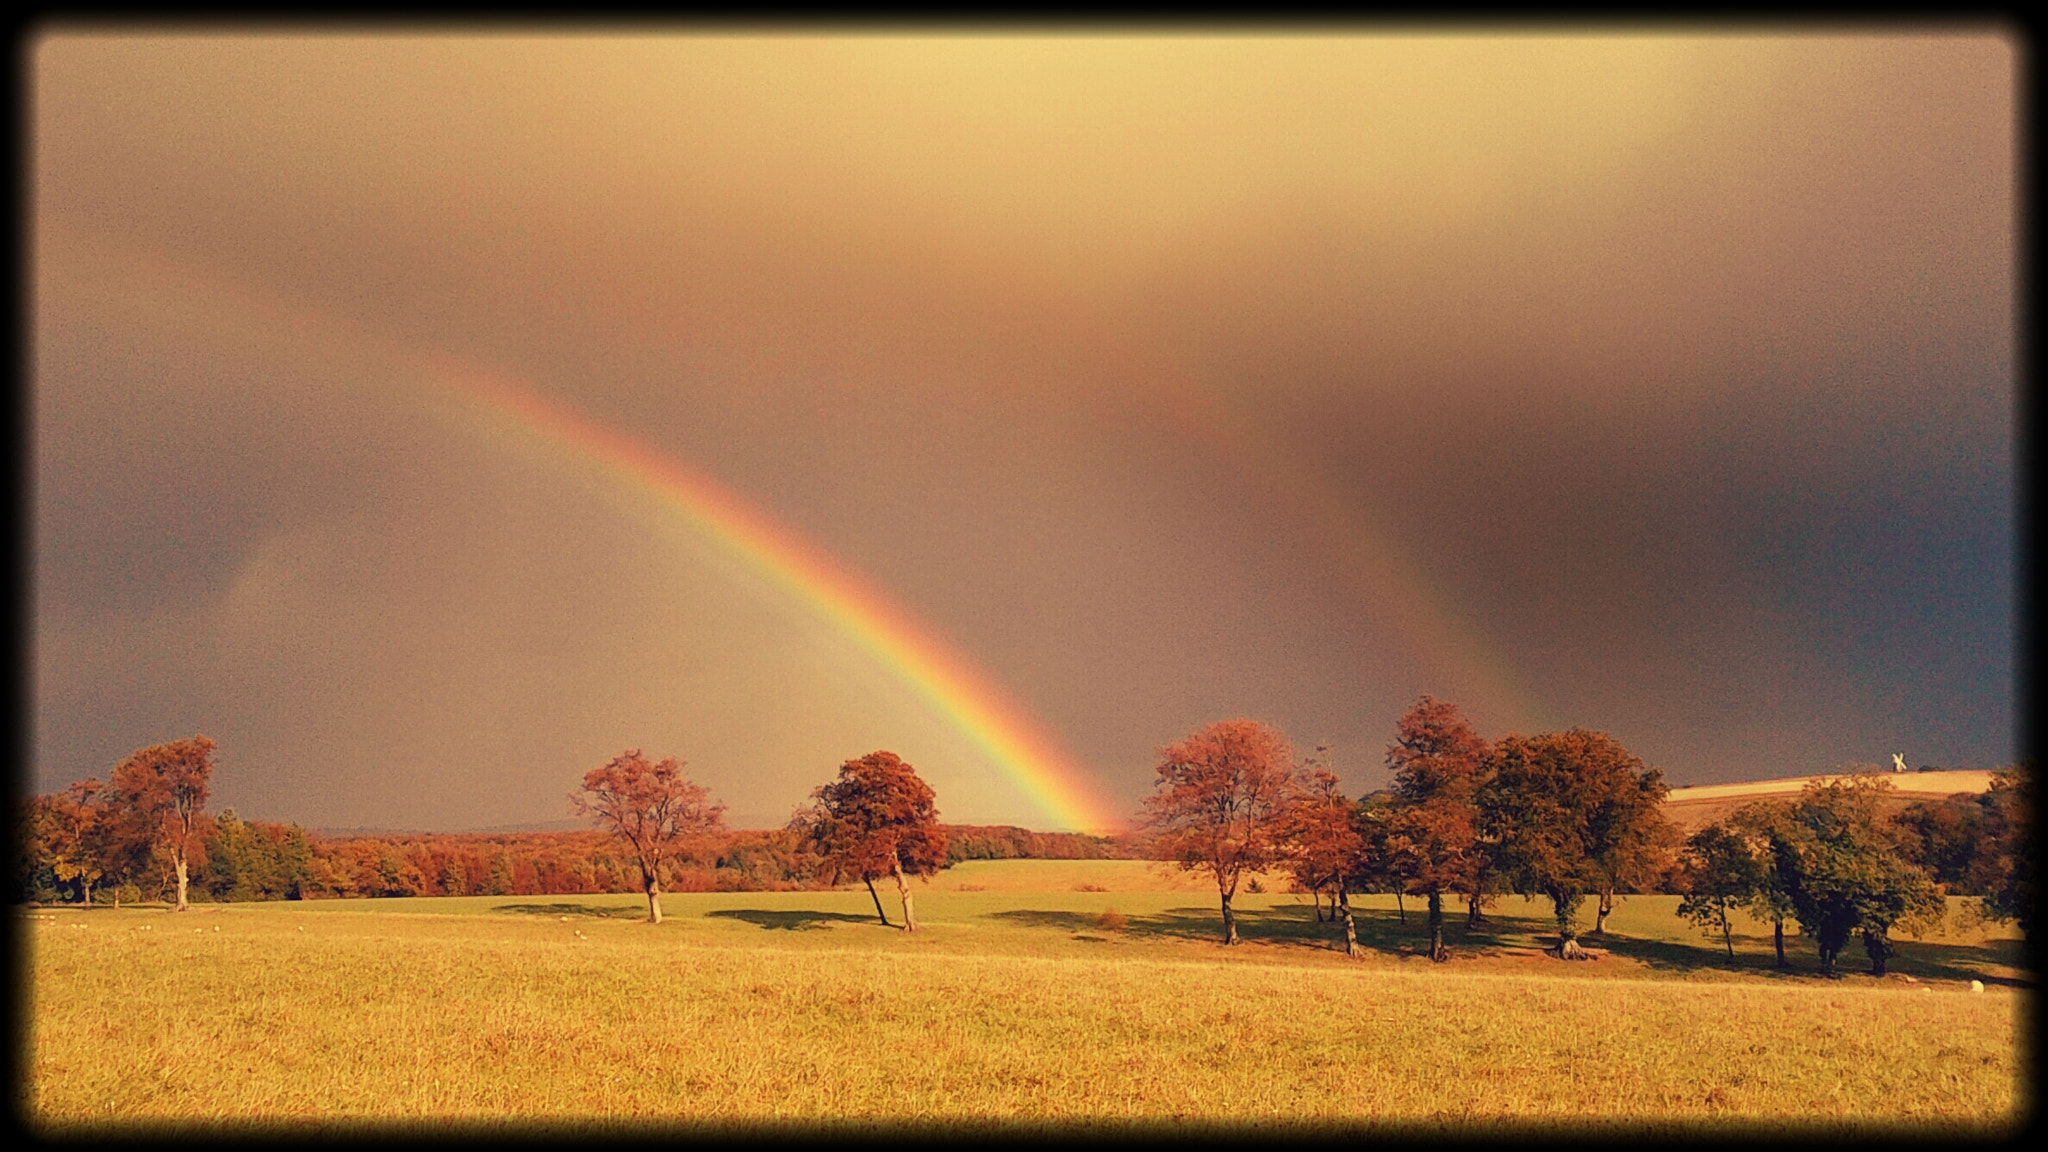 Photograph Double Rainbow over Halnaker windmill by Derek Σωκράτης Finch on 500px